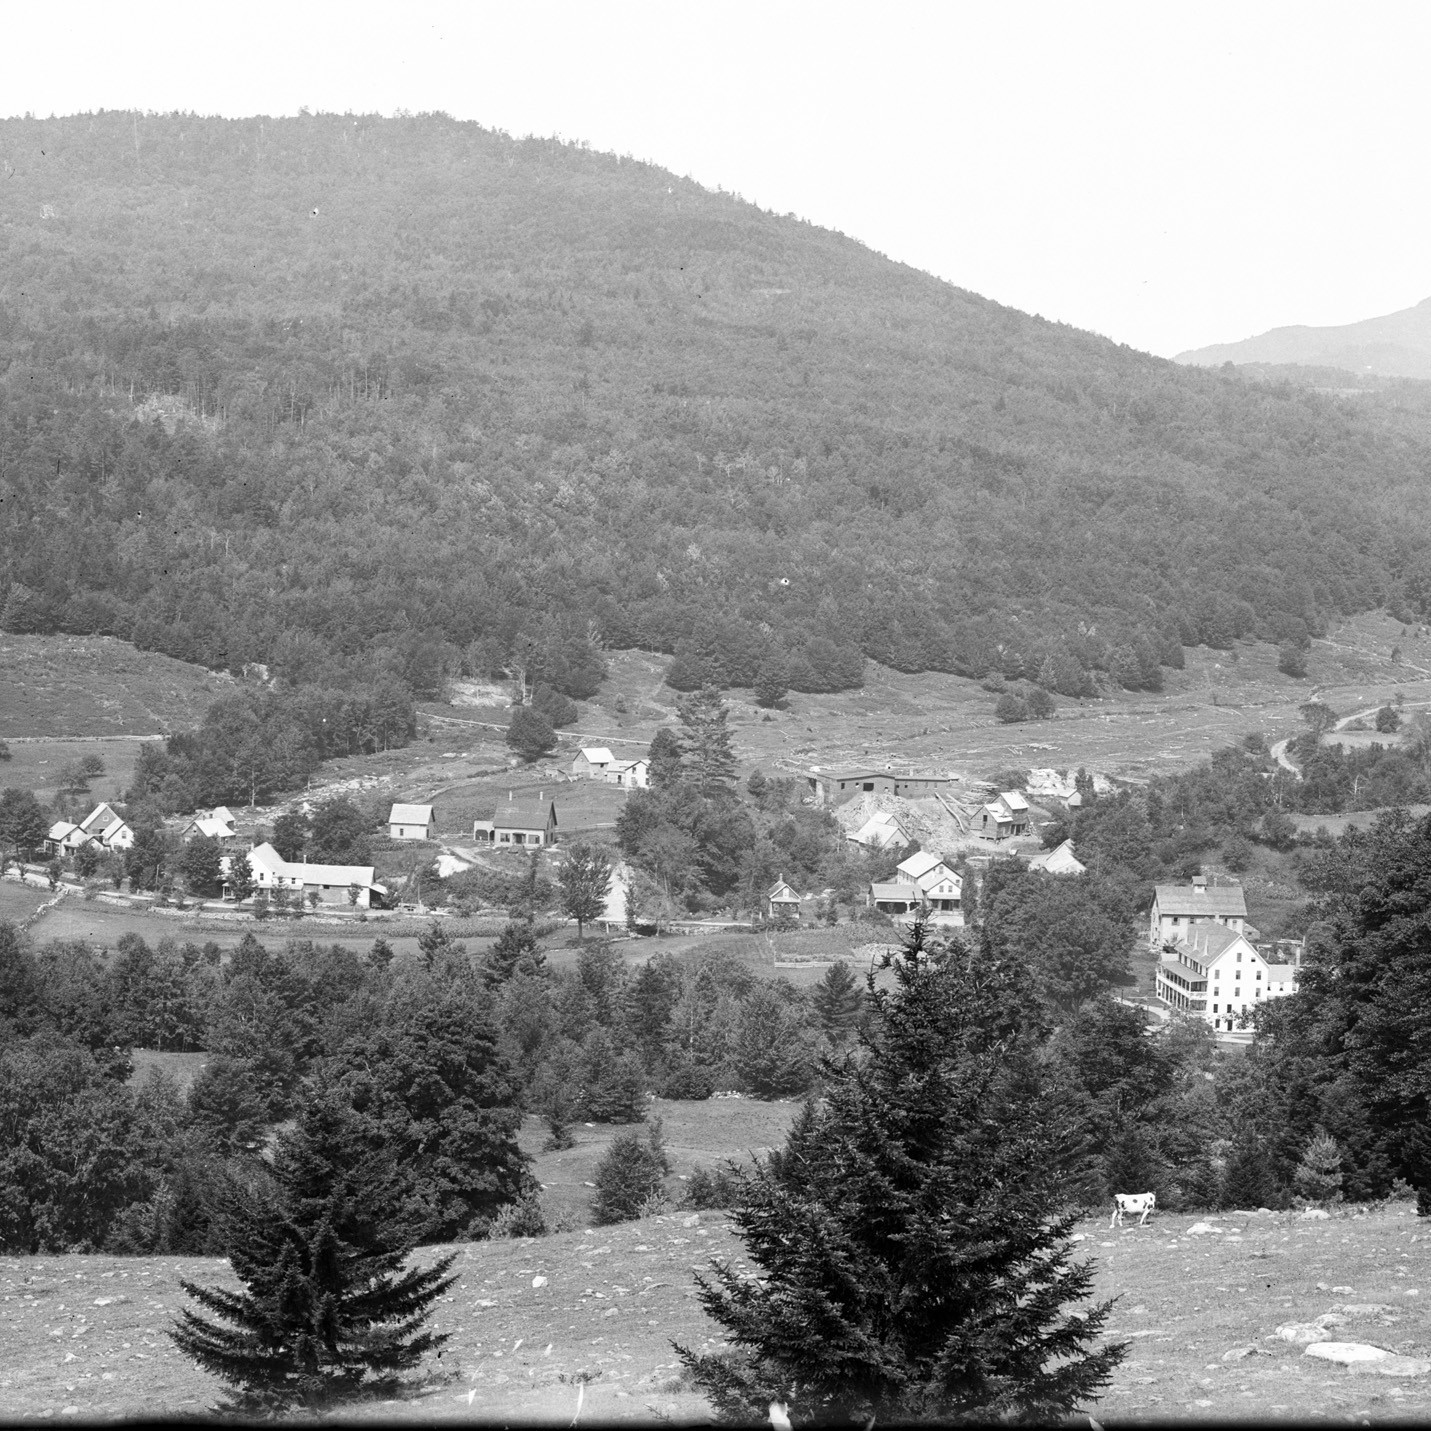 Photograph of village of Tyson, Vermont, by Walter Calflin.